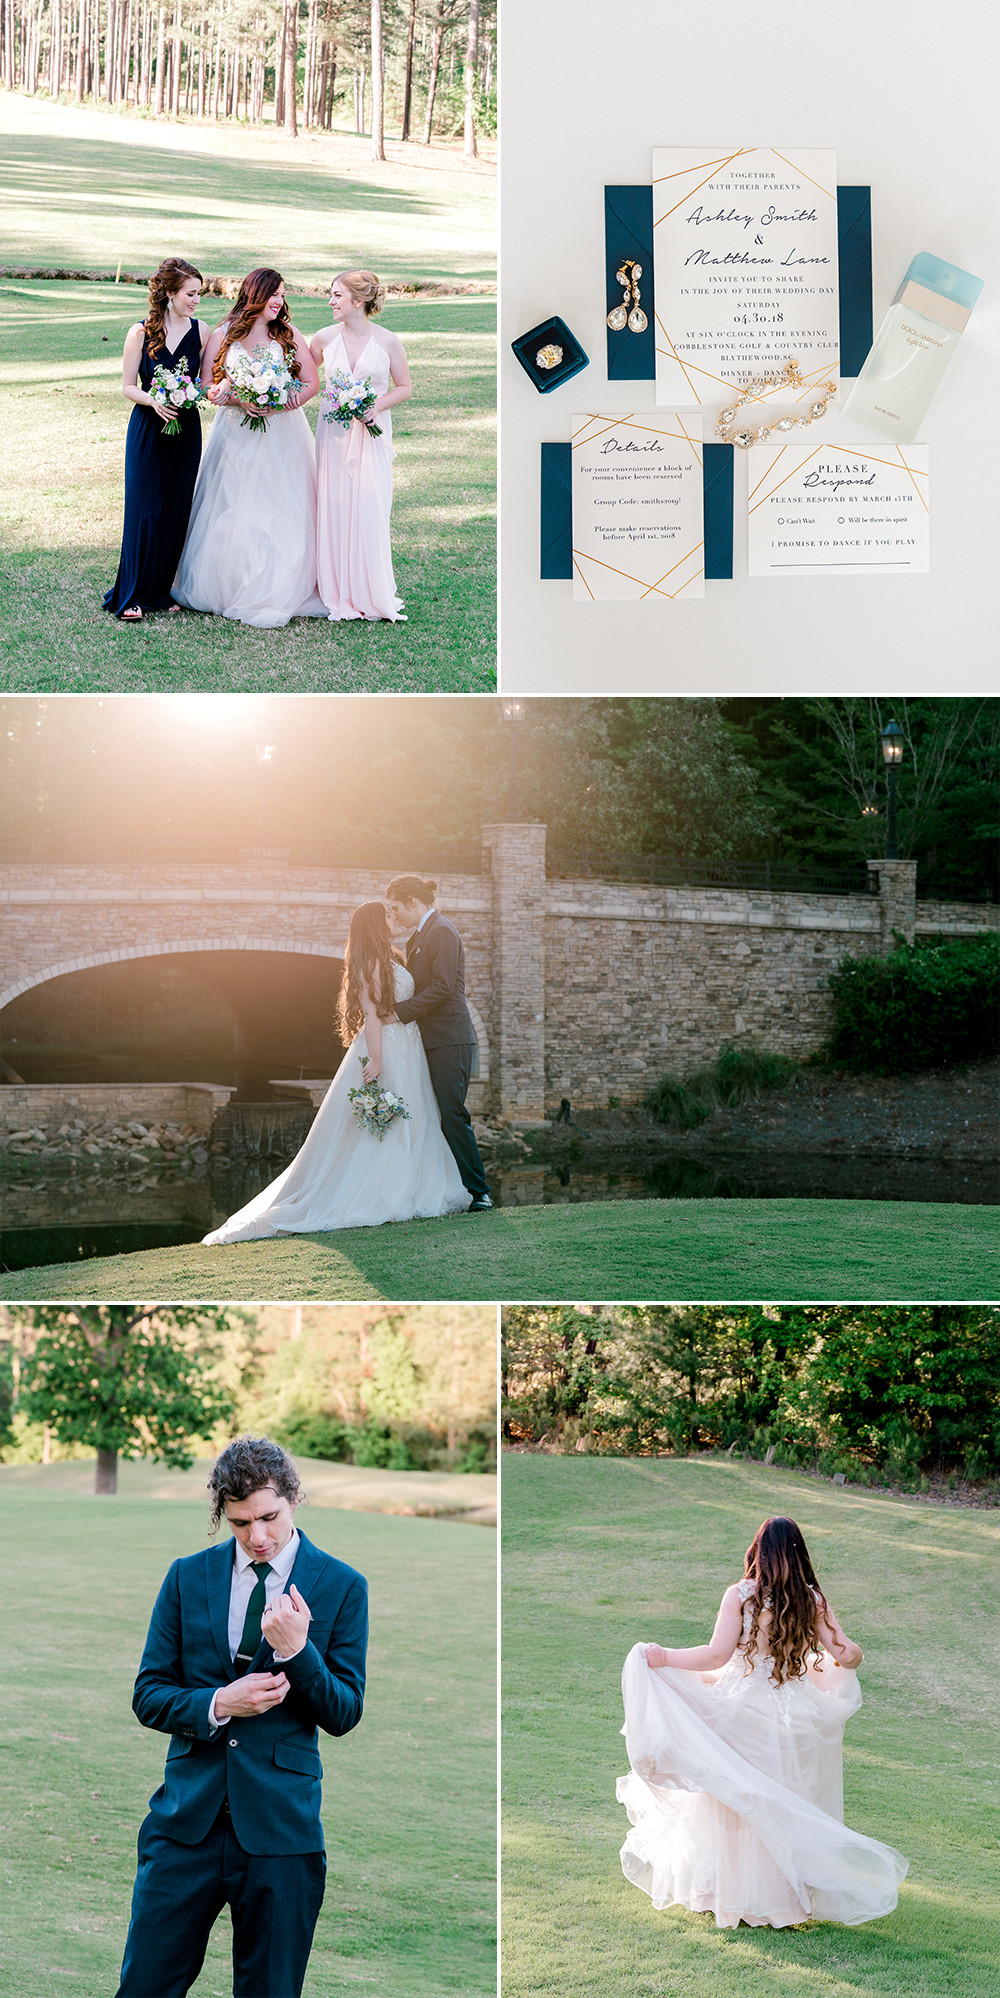 Wedding at Cobblestone Park Golf and Country Club | Nina Bashaw is a fine art engagement photographer serving Columbia, Charleston, Greenville, Charlotte, NC Augusta, Ga, Nashville, TN surrounding areas and worldwide destination weddings and elopements.